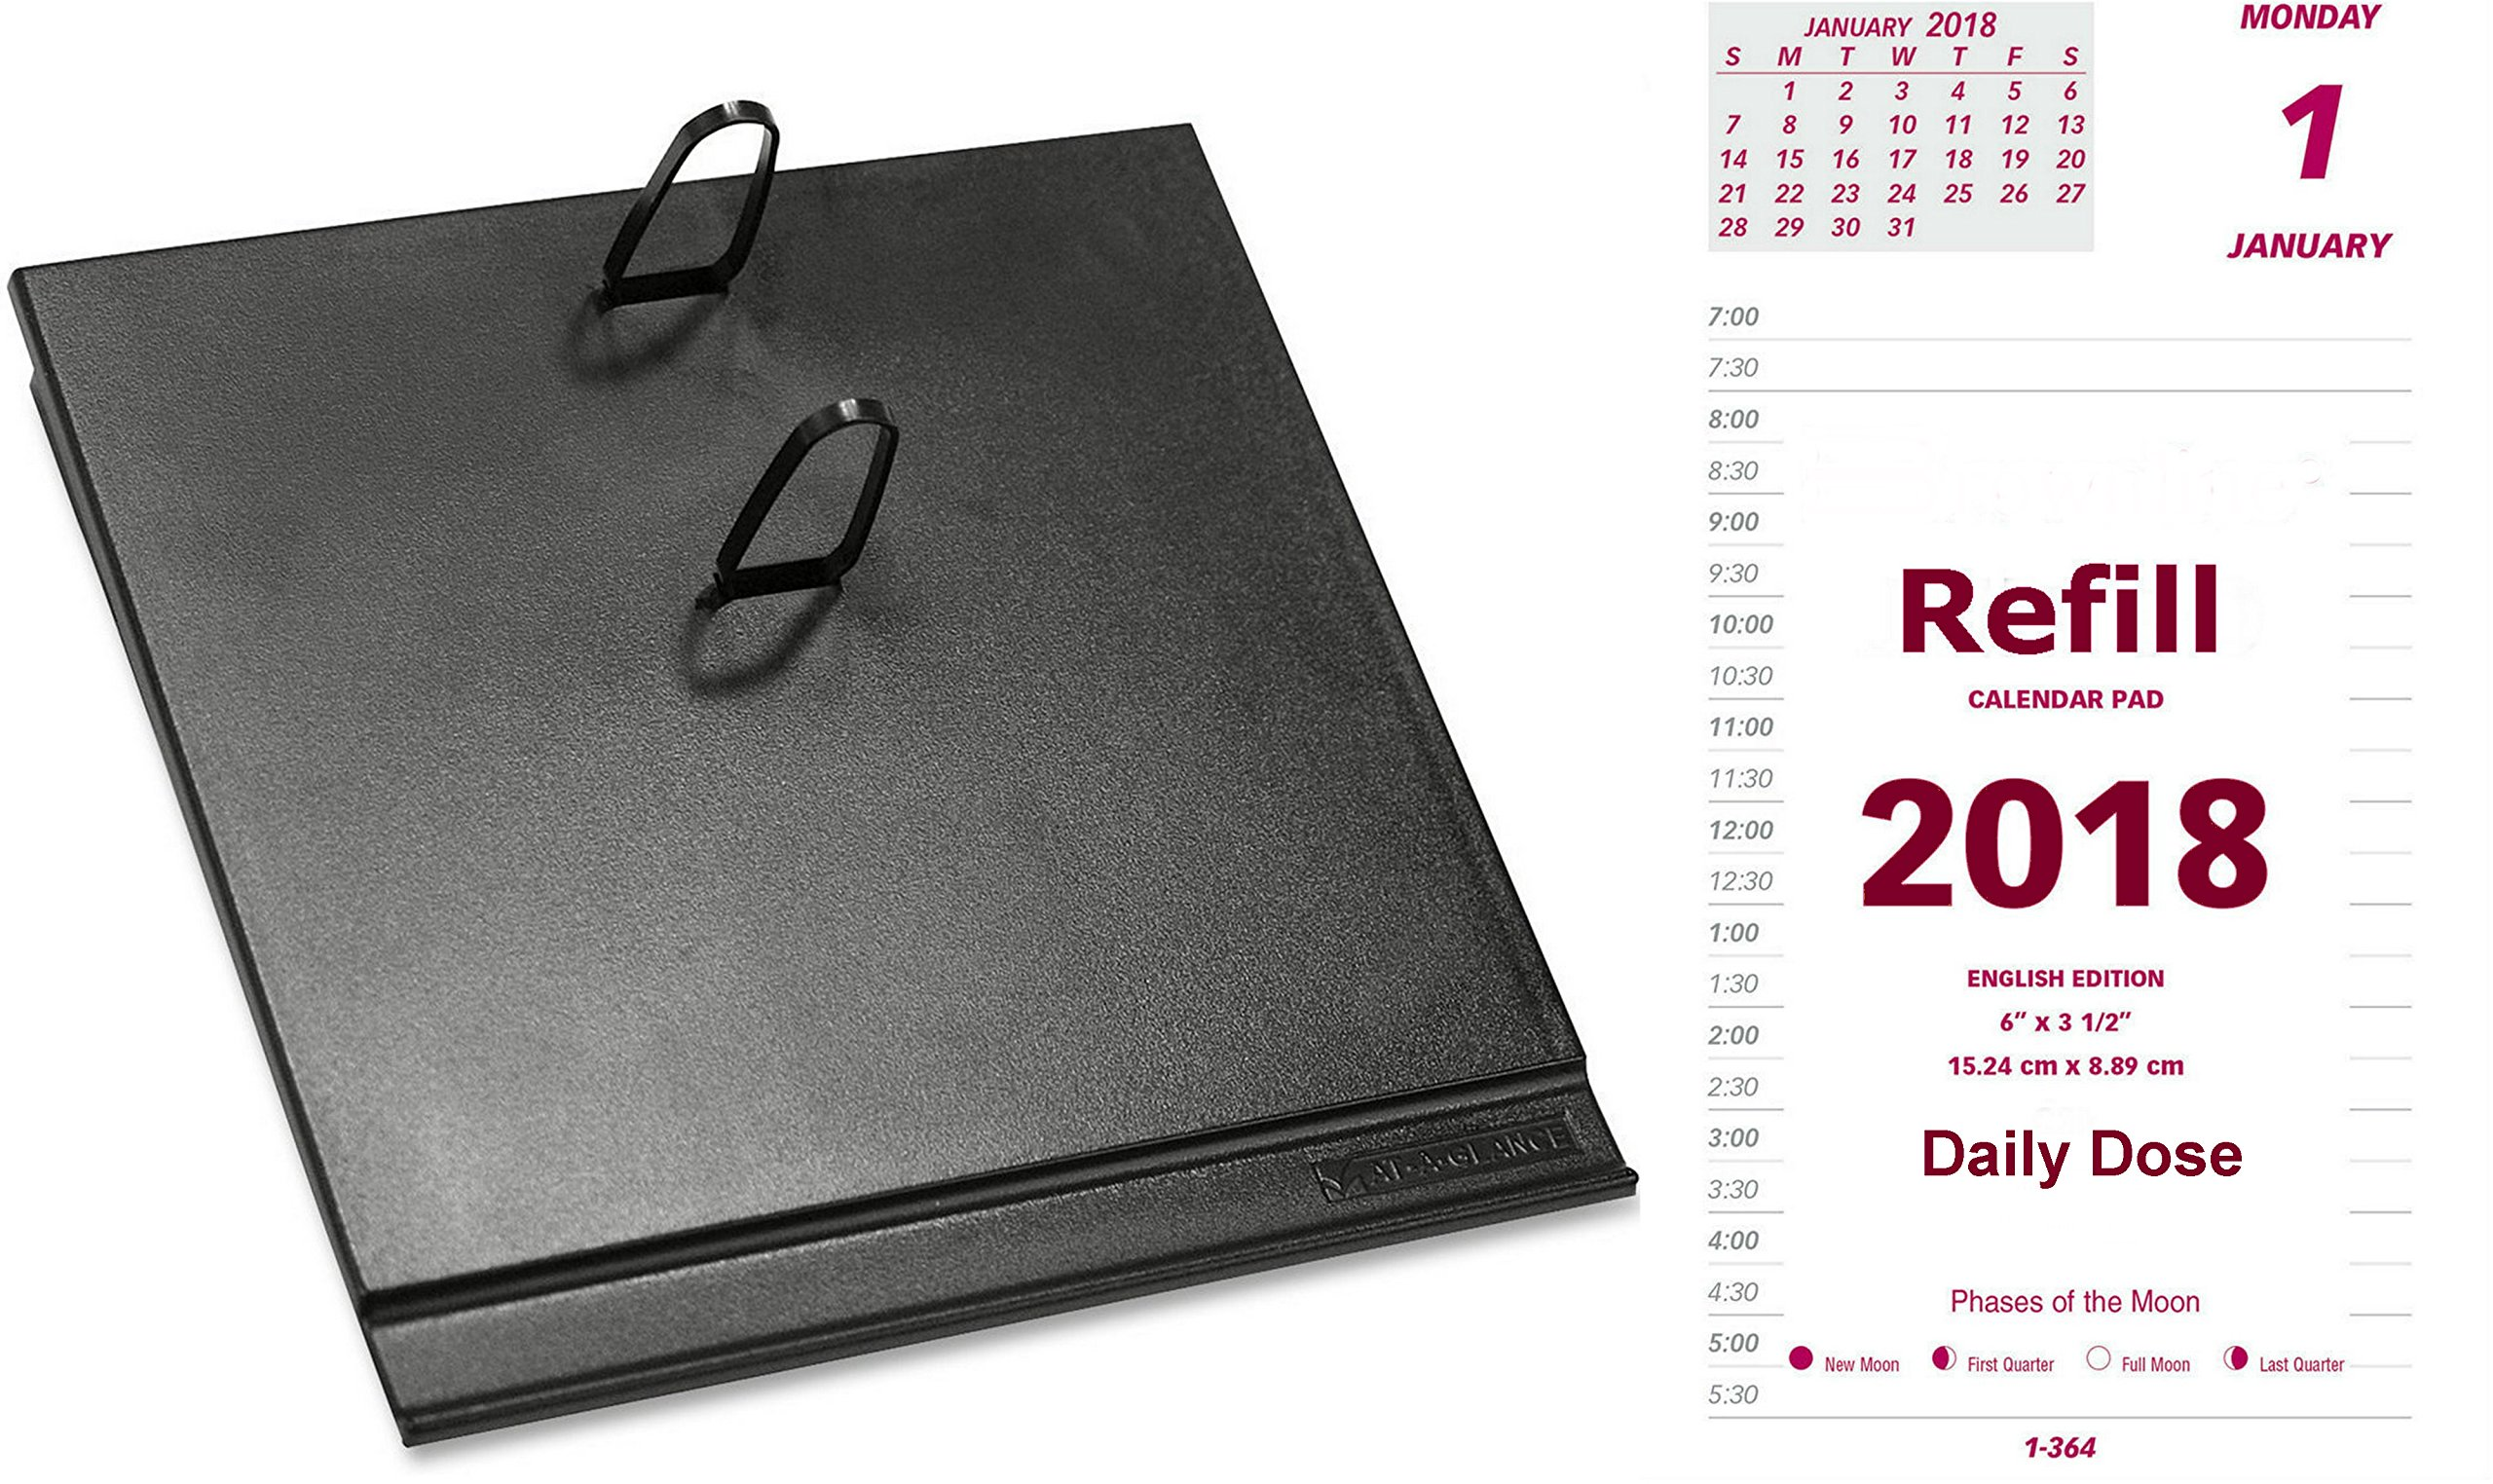 2018 Daily Calendar Set, Includes Daily Refill and Base (Black Plastic Calendar Holder with Metal Clips),  Compare to At-A-Glance E717-50 and E17-00